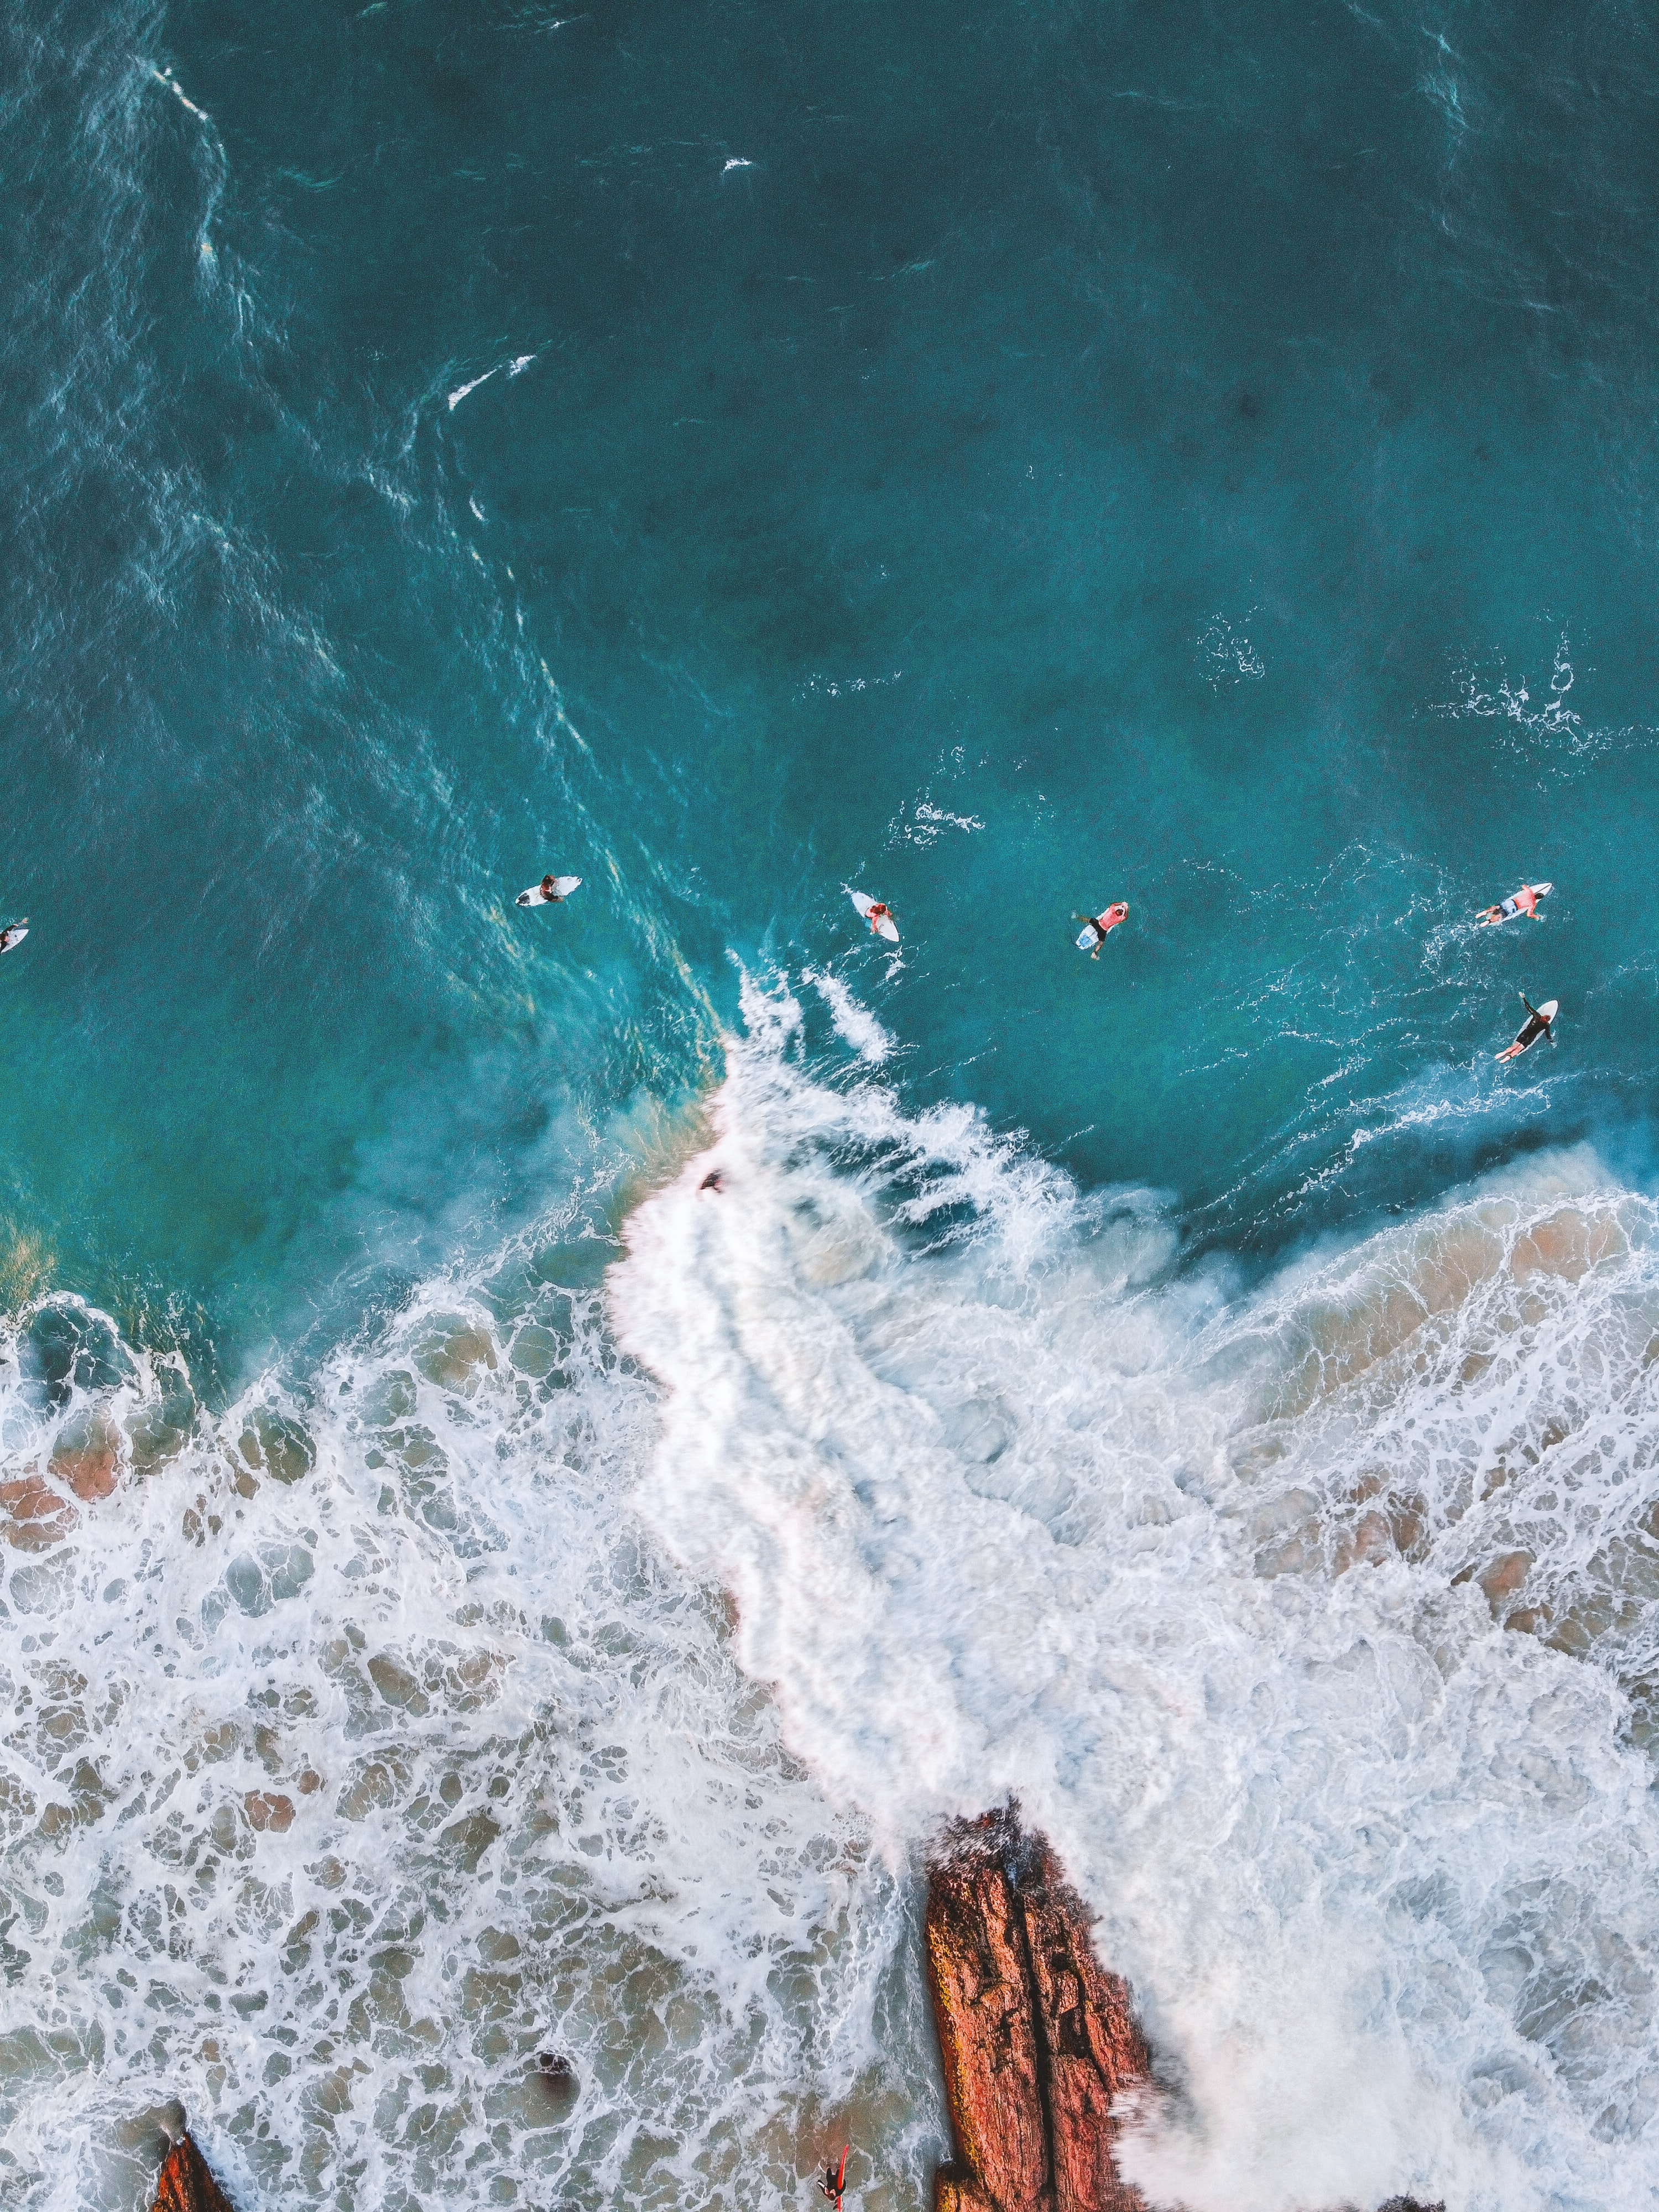 128656 download wallpaper Nature, Serfing, Ocean, Rocks, View From Above screensavers and pictures for free